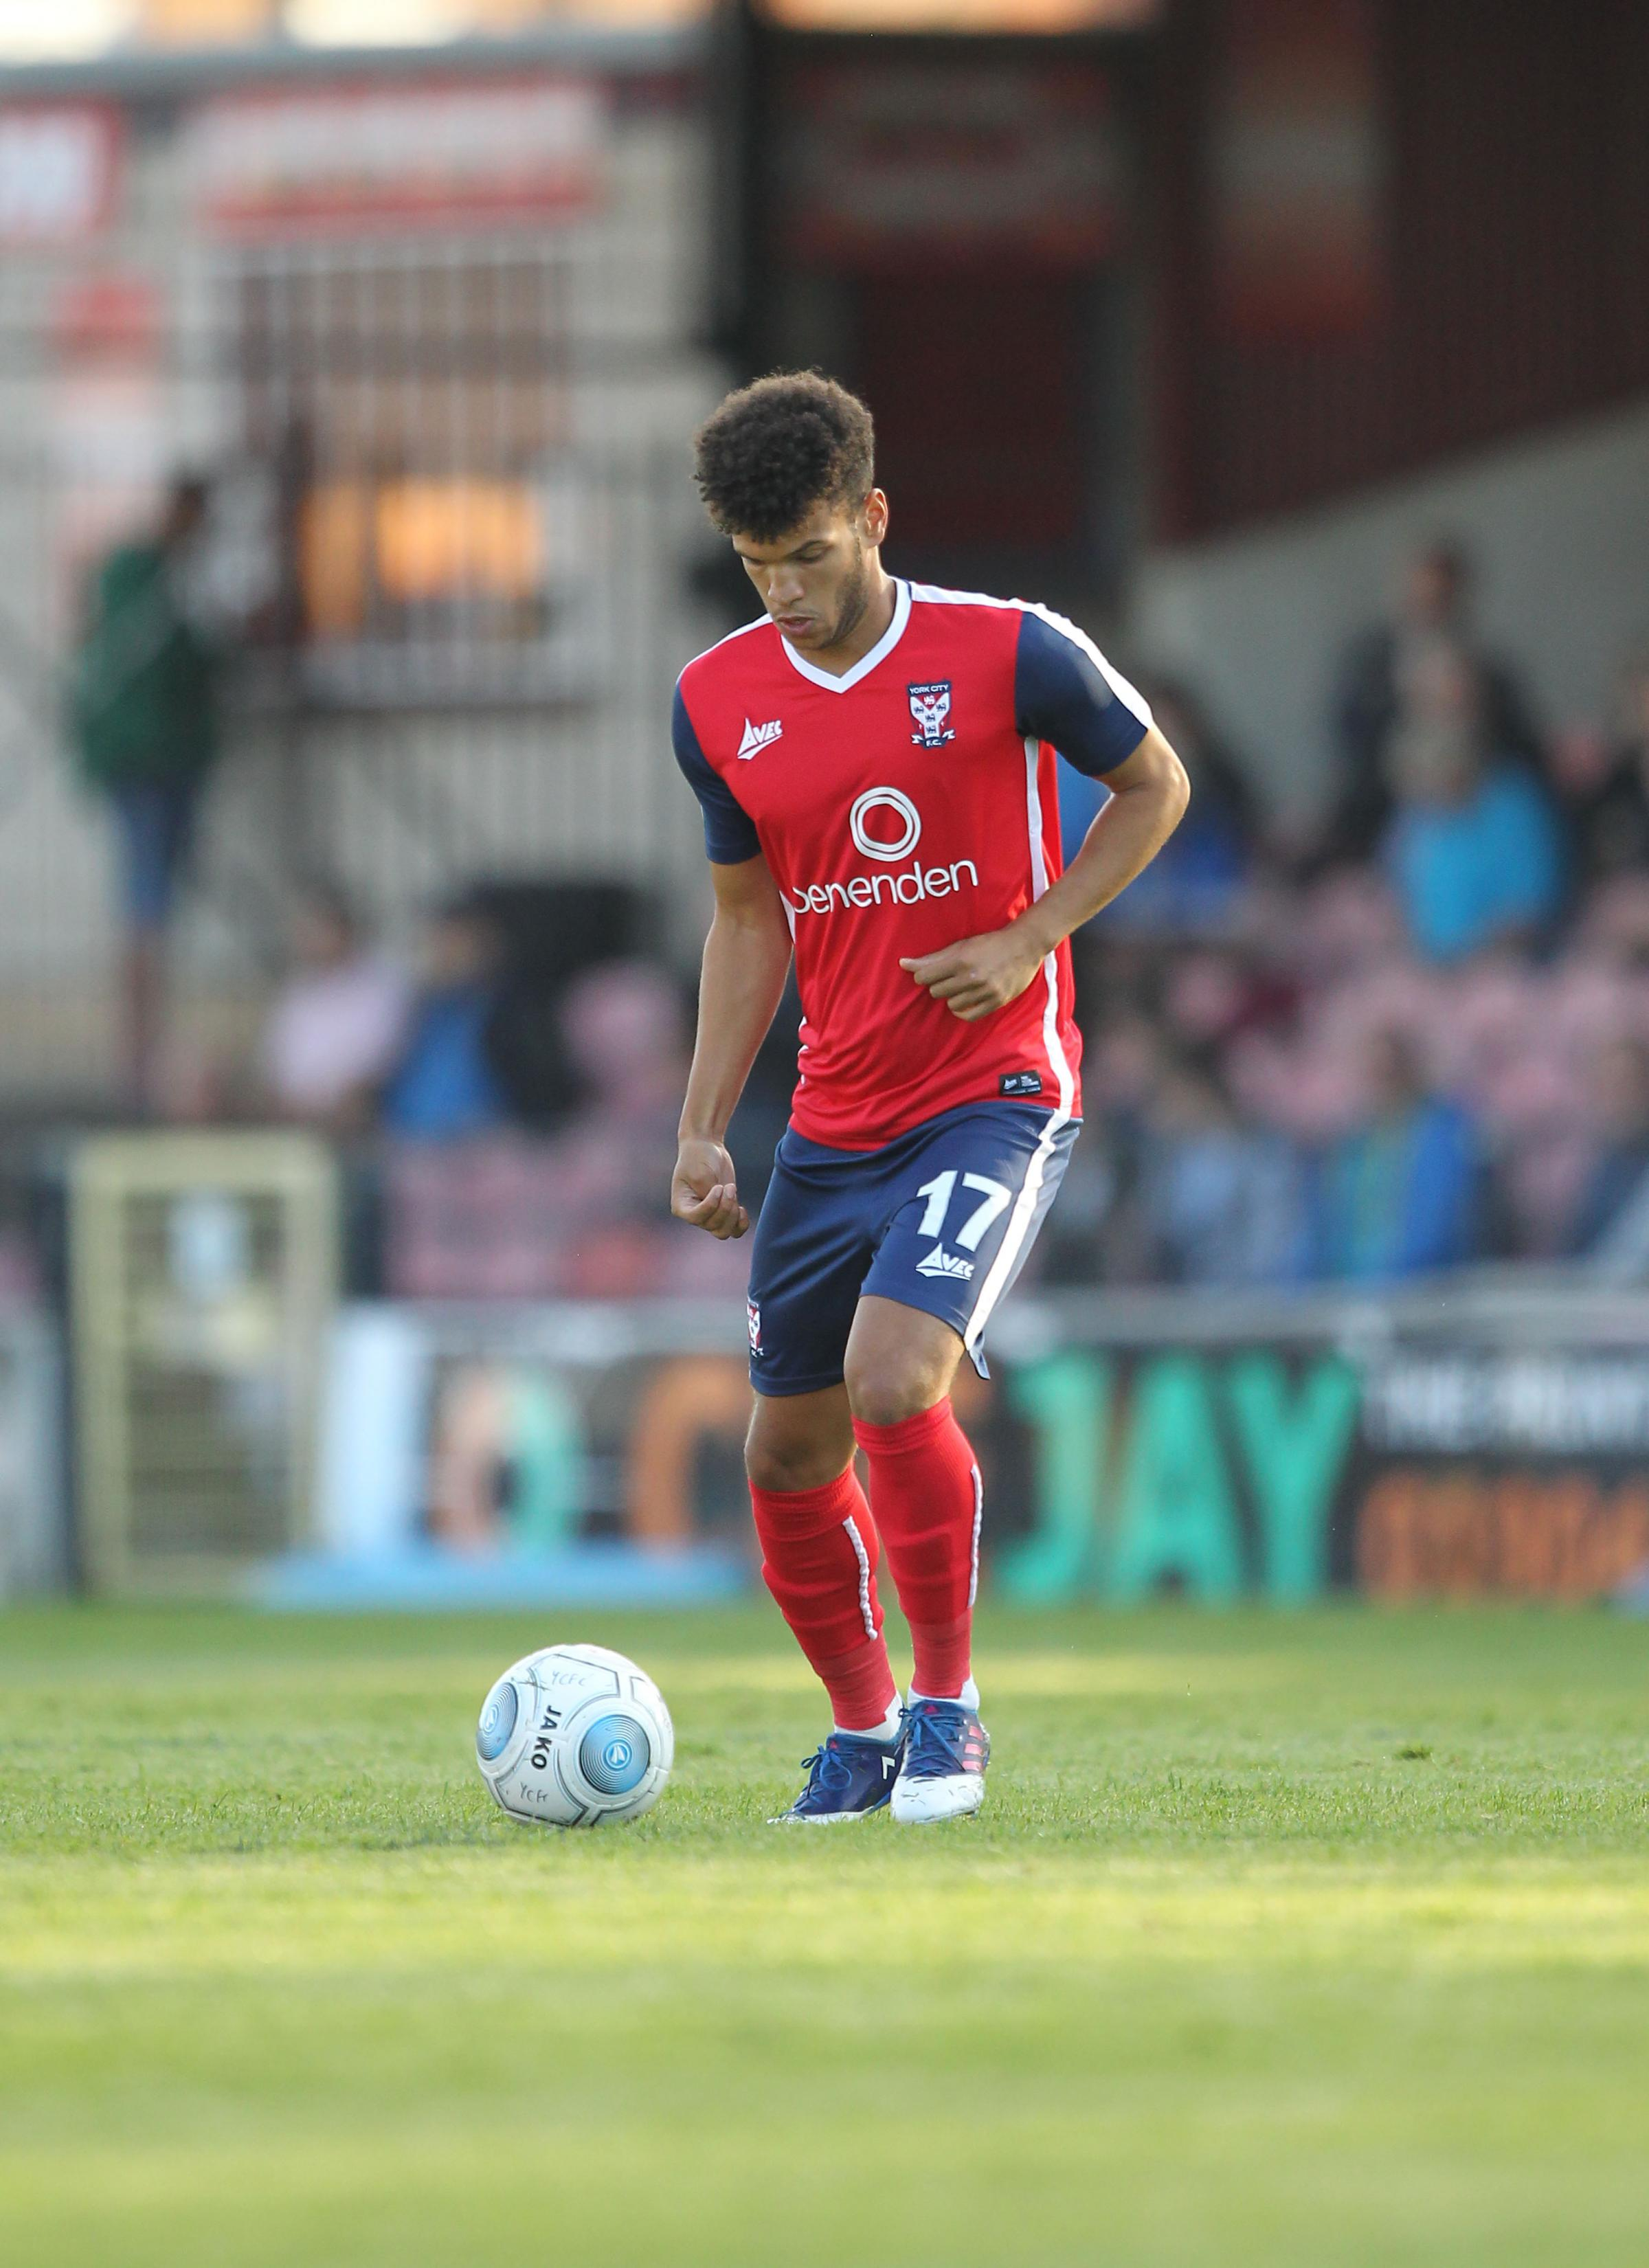 WHARTS AND ALL: York City midfielder Theo Wharton is doing his best to convince manager Martin Gray he is worthy of first-team selection